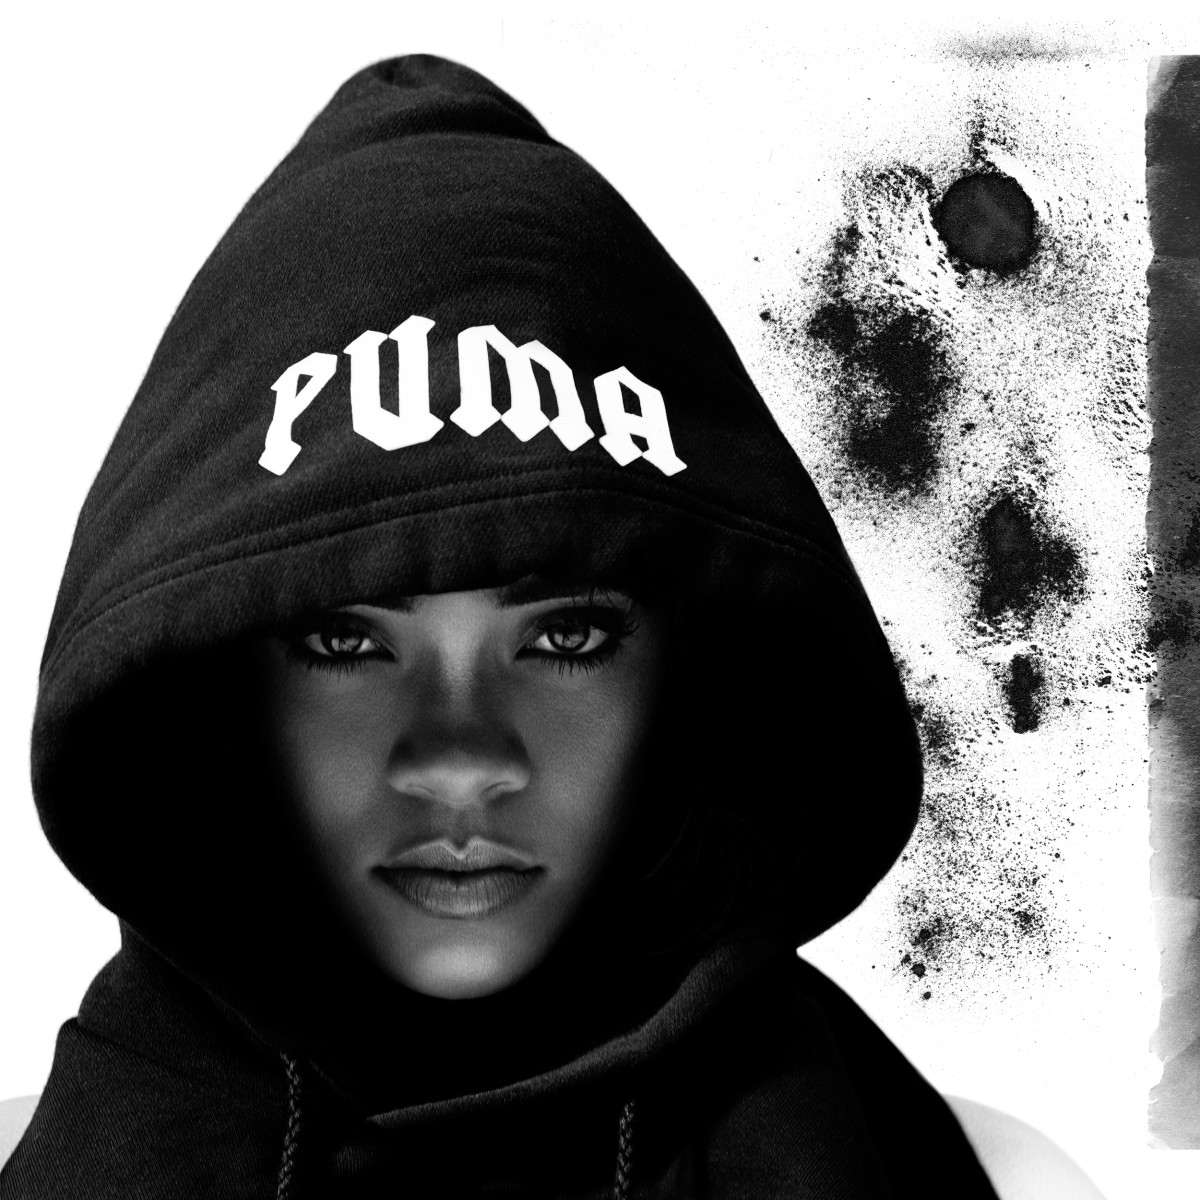 Rihanna in Fenty Puma. Photo: Fenty Puma by Rihanna